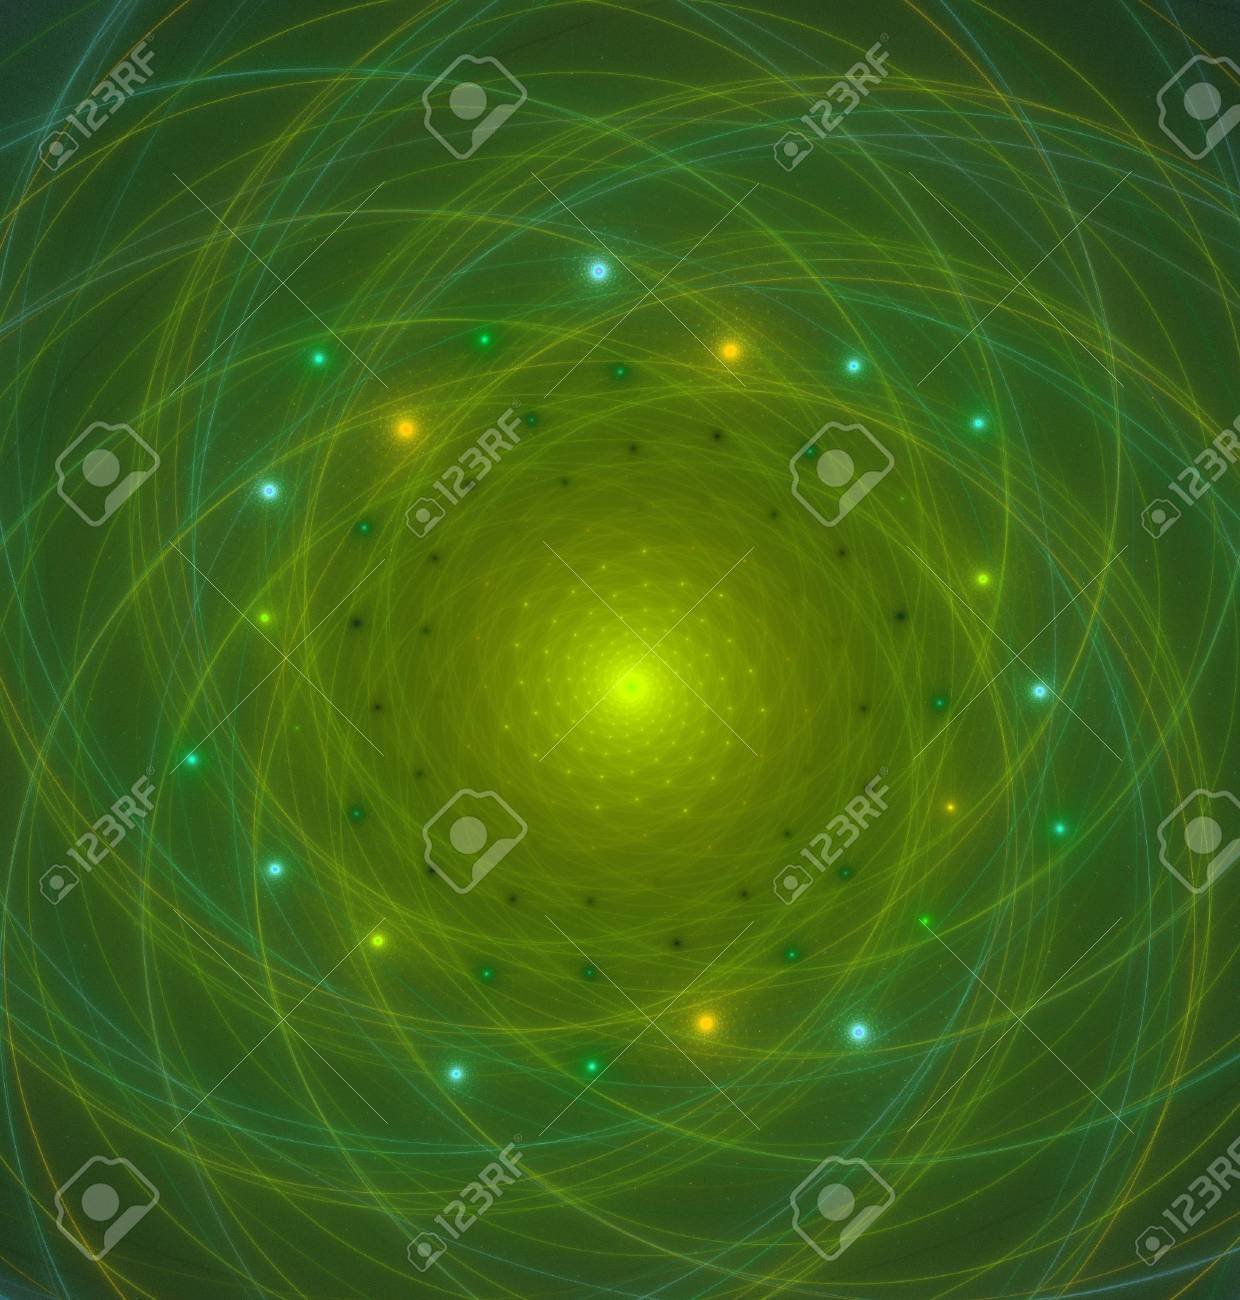 Abstract fractal flame background image Stock Photo - 6645270